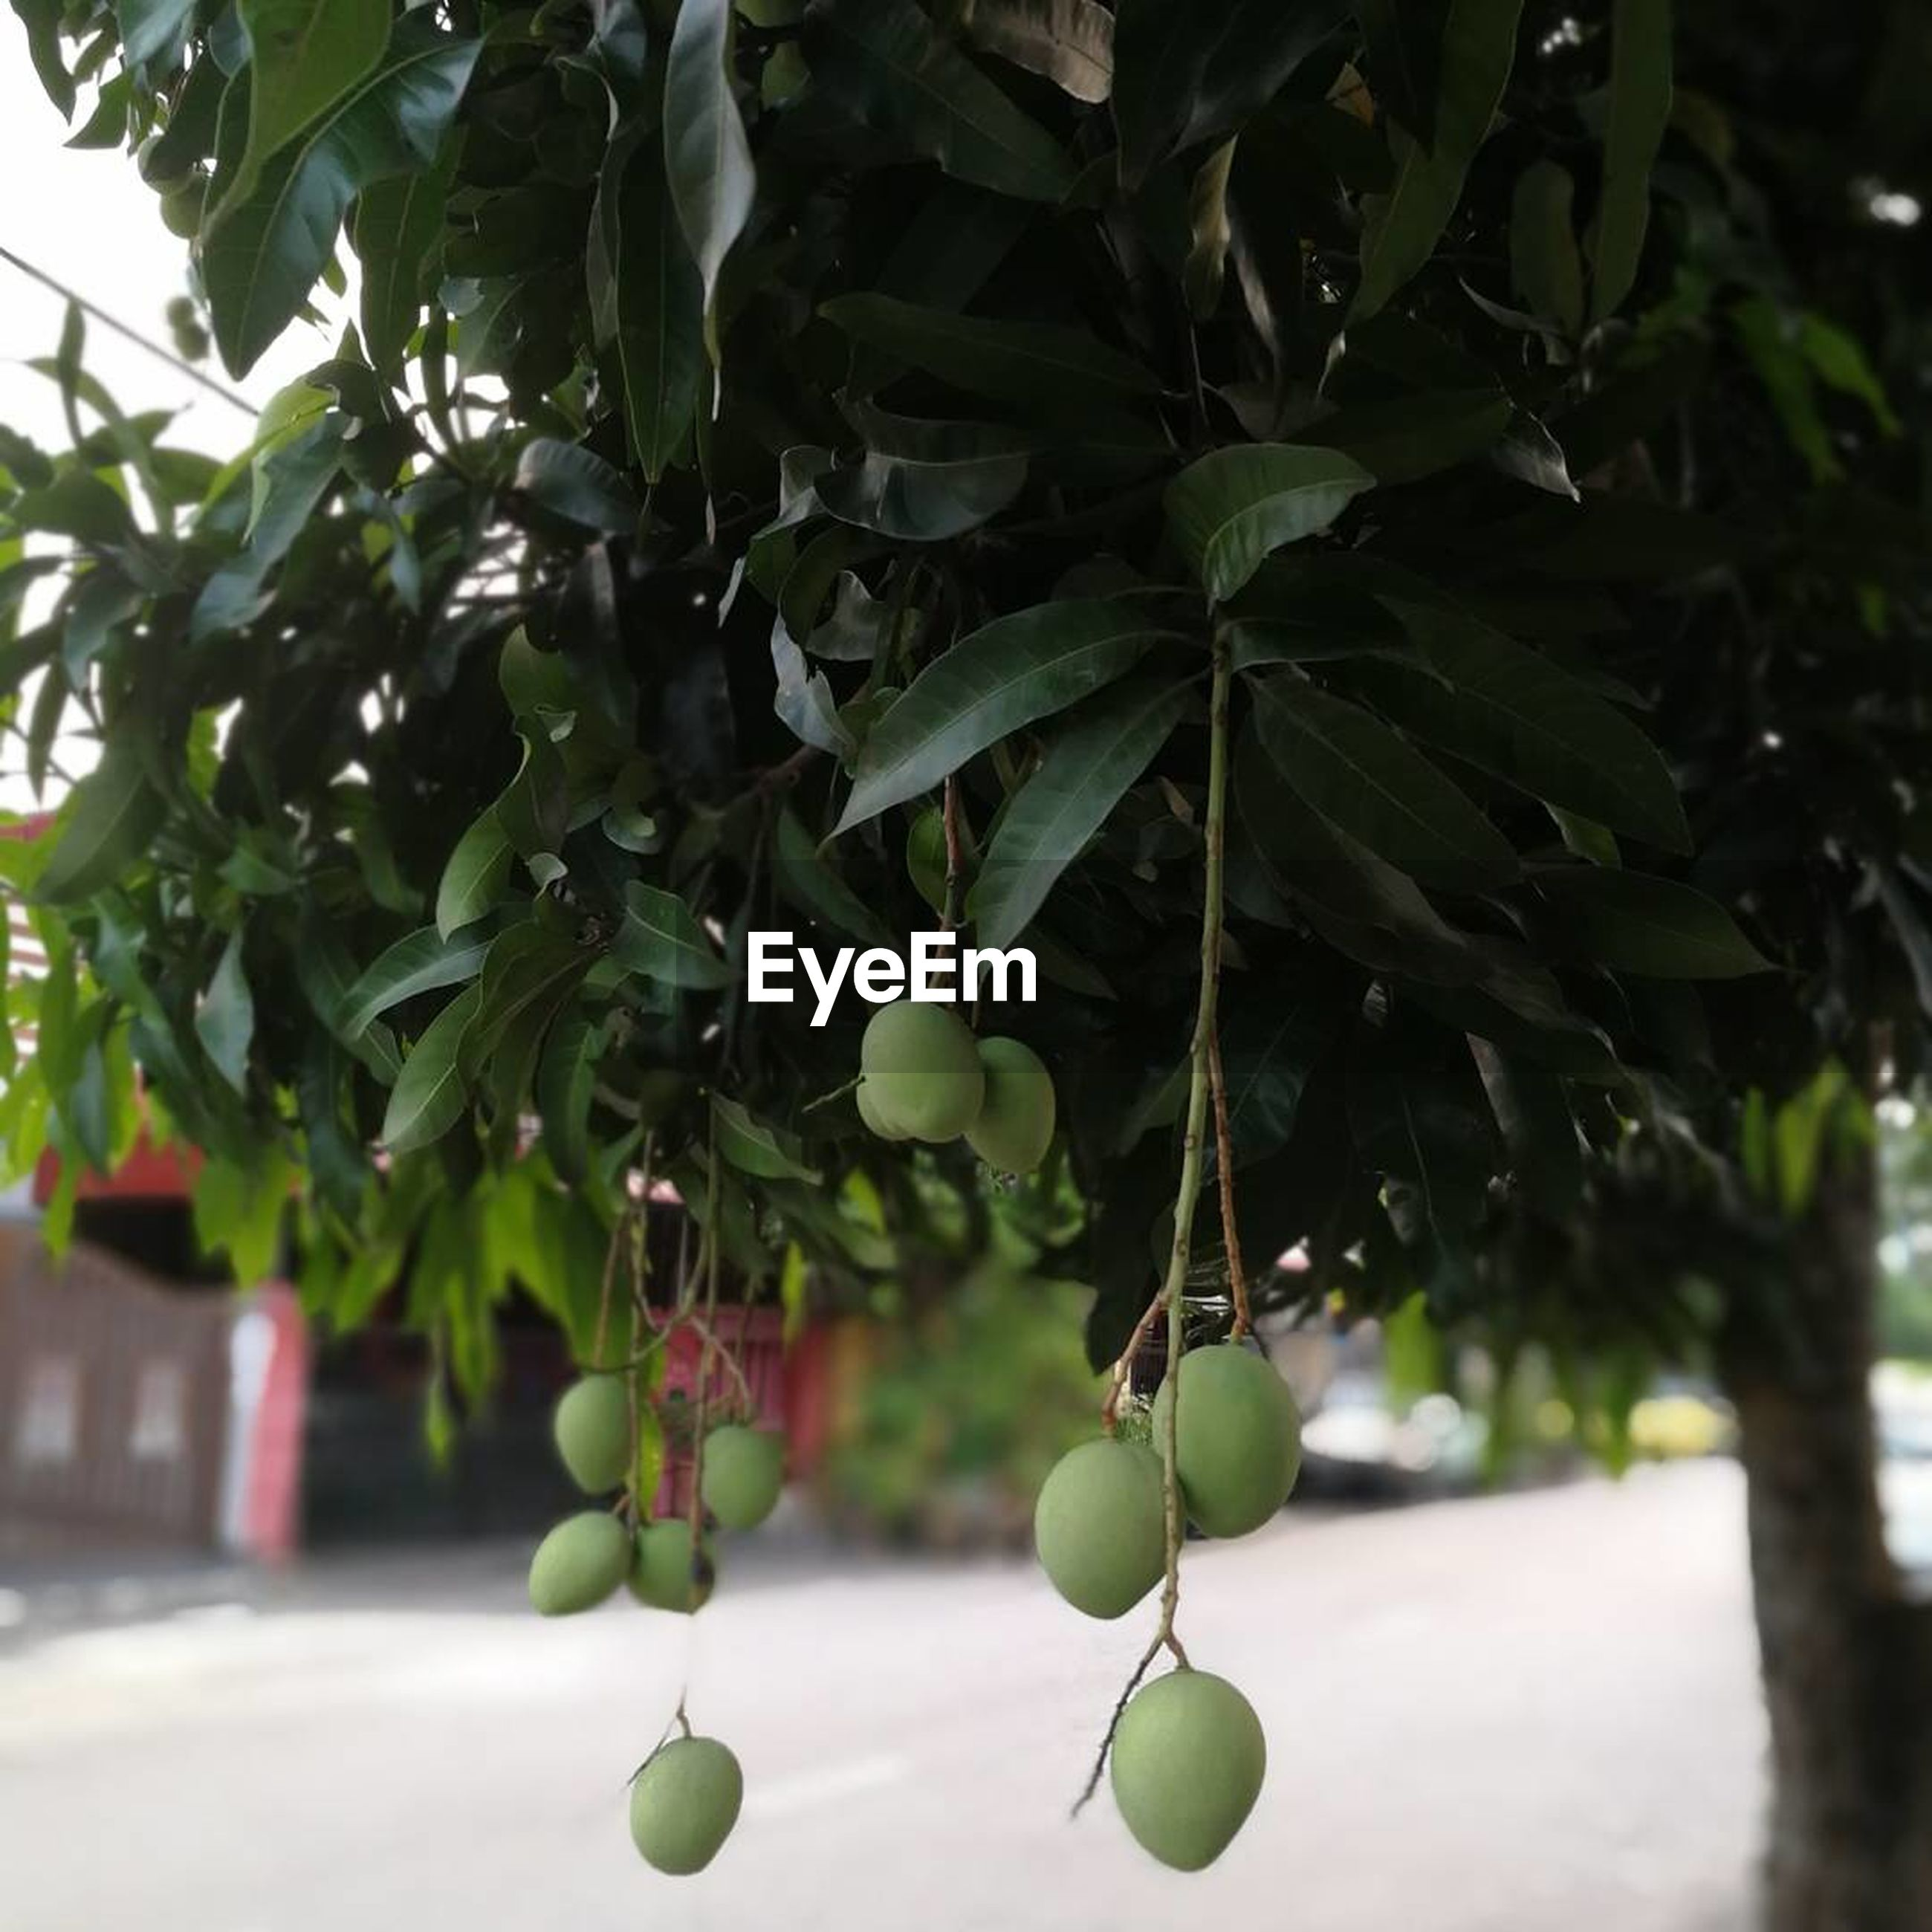 fruit, growth, hanging, tree, leaf, green color, food and drink, citrus fruit, freshness, outdoors, healthy eating, day, no people, nature, orange tree, food, unripe, focus on foreground, branch, plant, beauty in nature, close-up